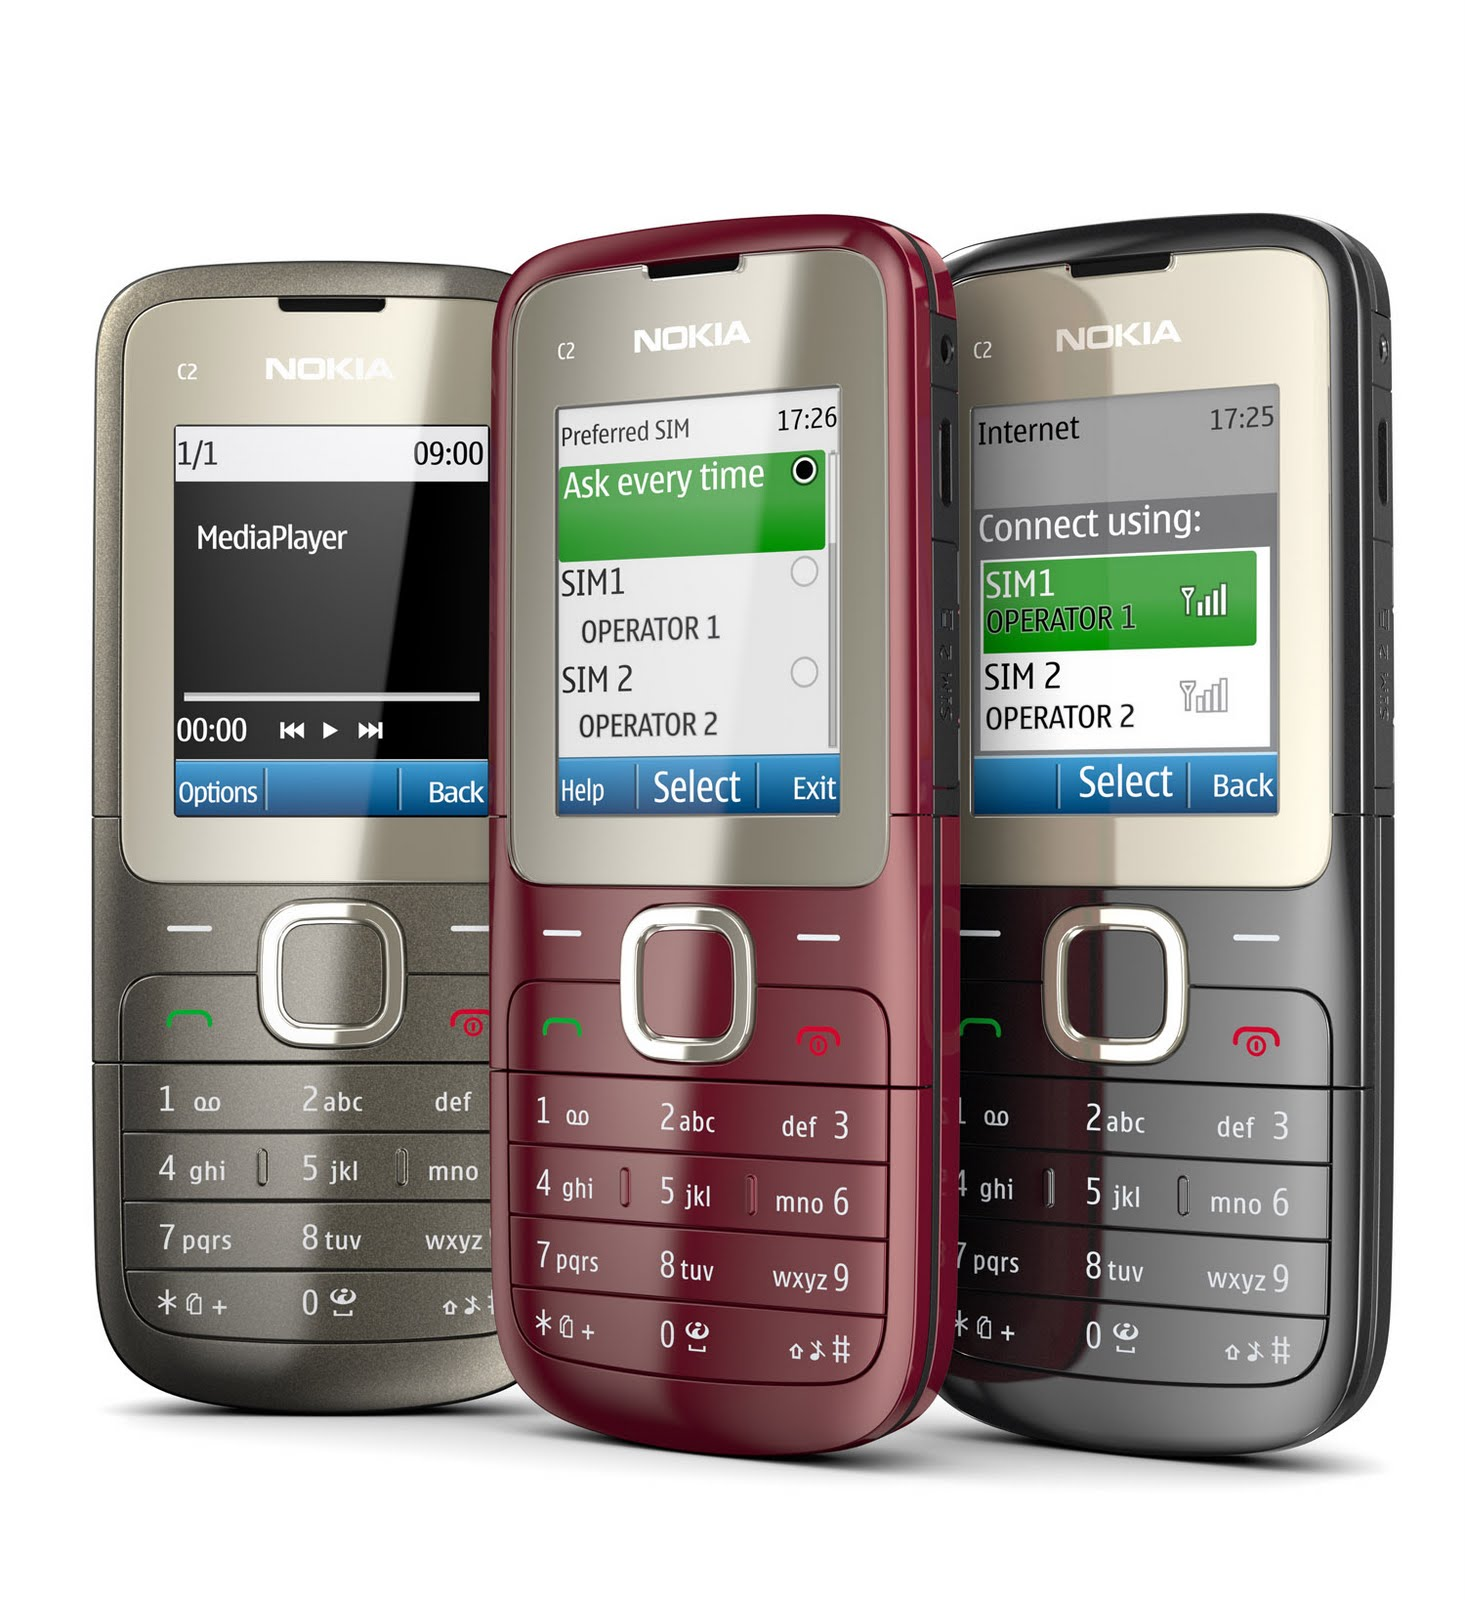 nokia c2 00 review pics and price a dual sim phone with. Black Bedroom Furniture Sets. Home Design Ideas